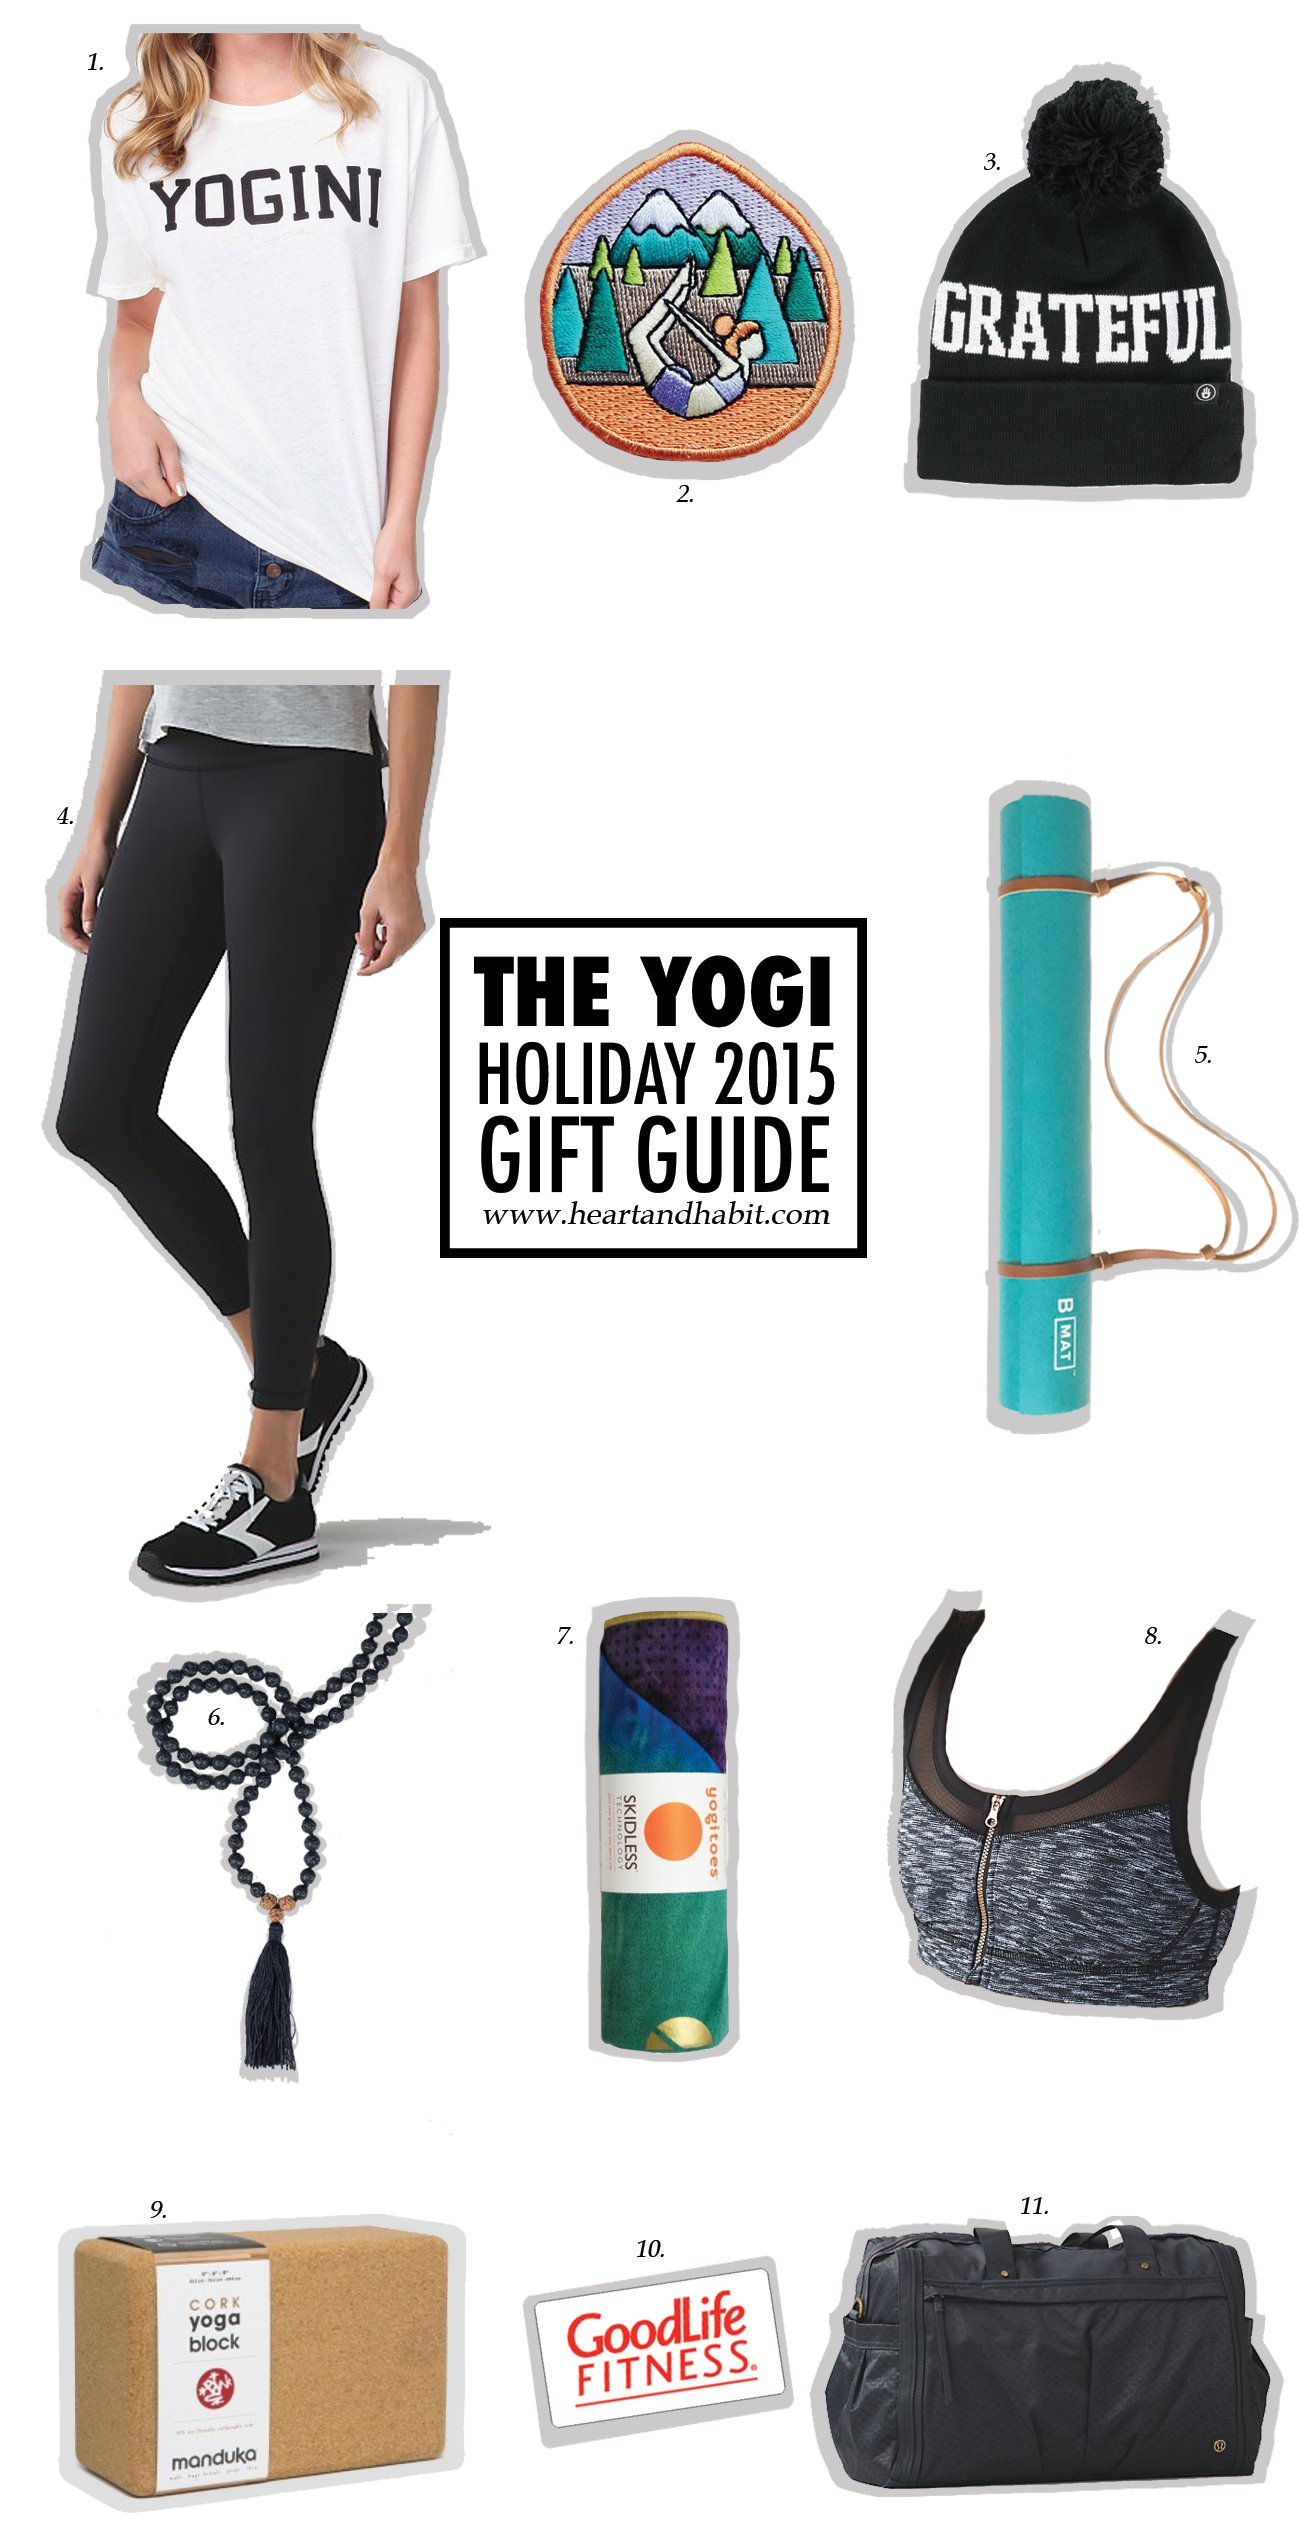 For The Yogi | 2015 Holiday Gift Guide